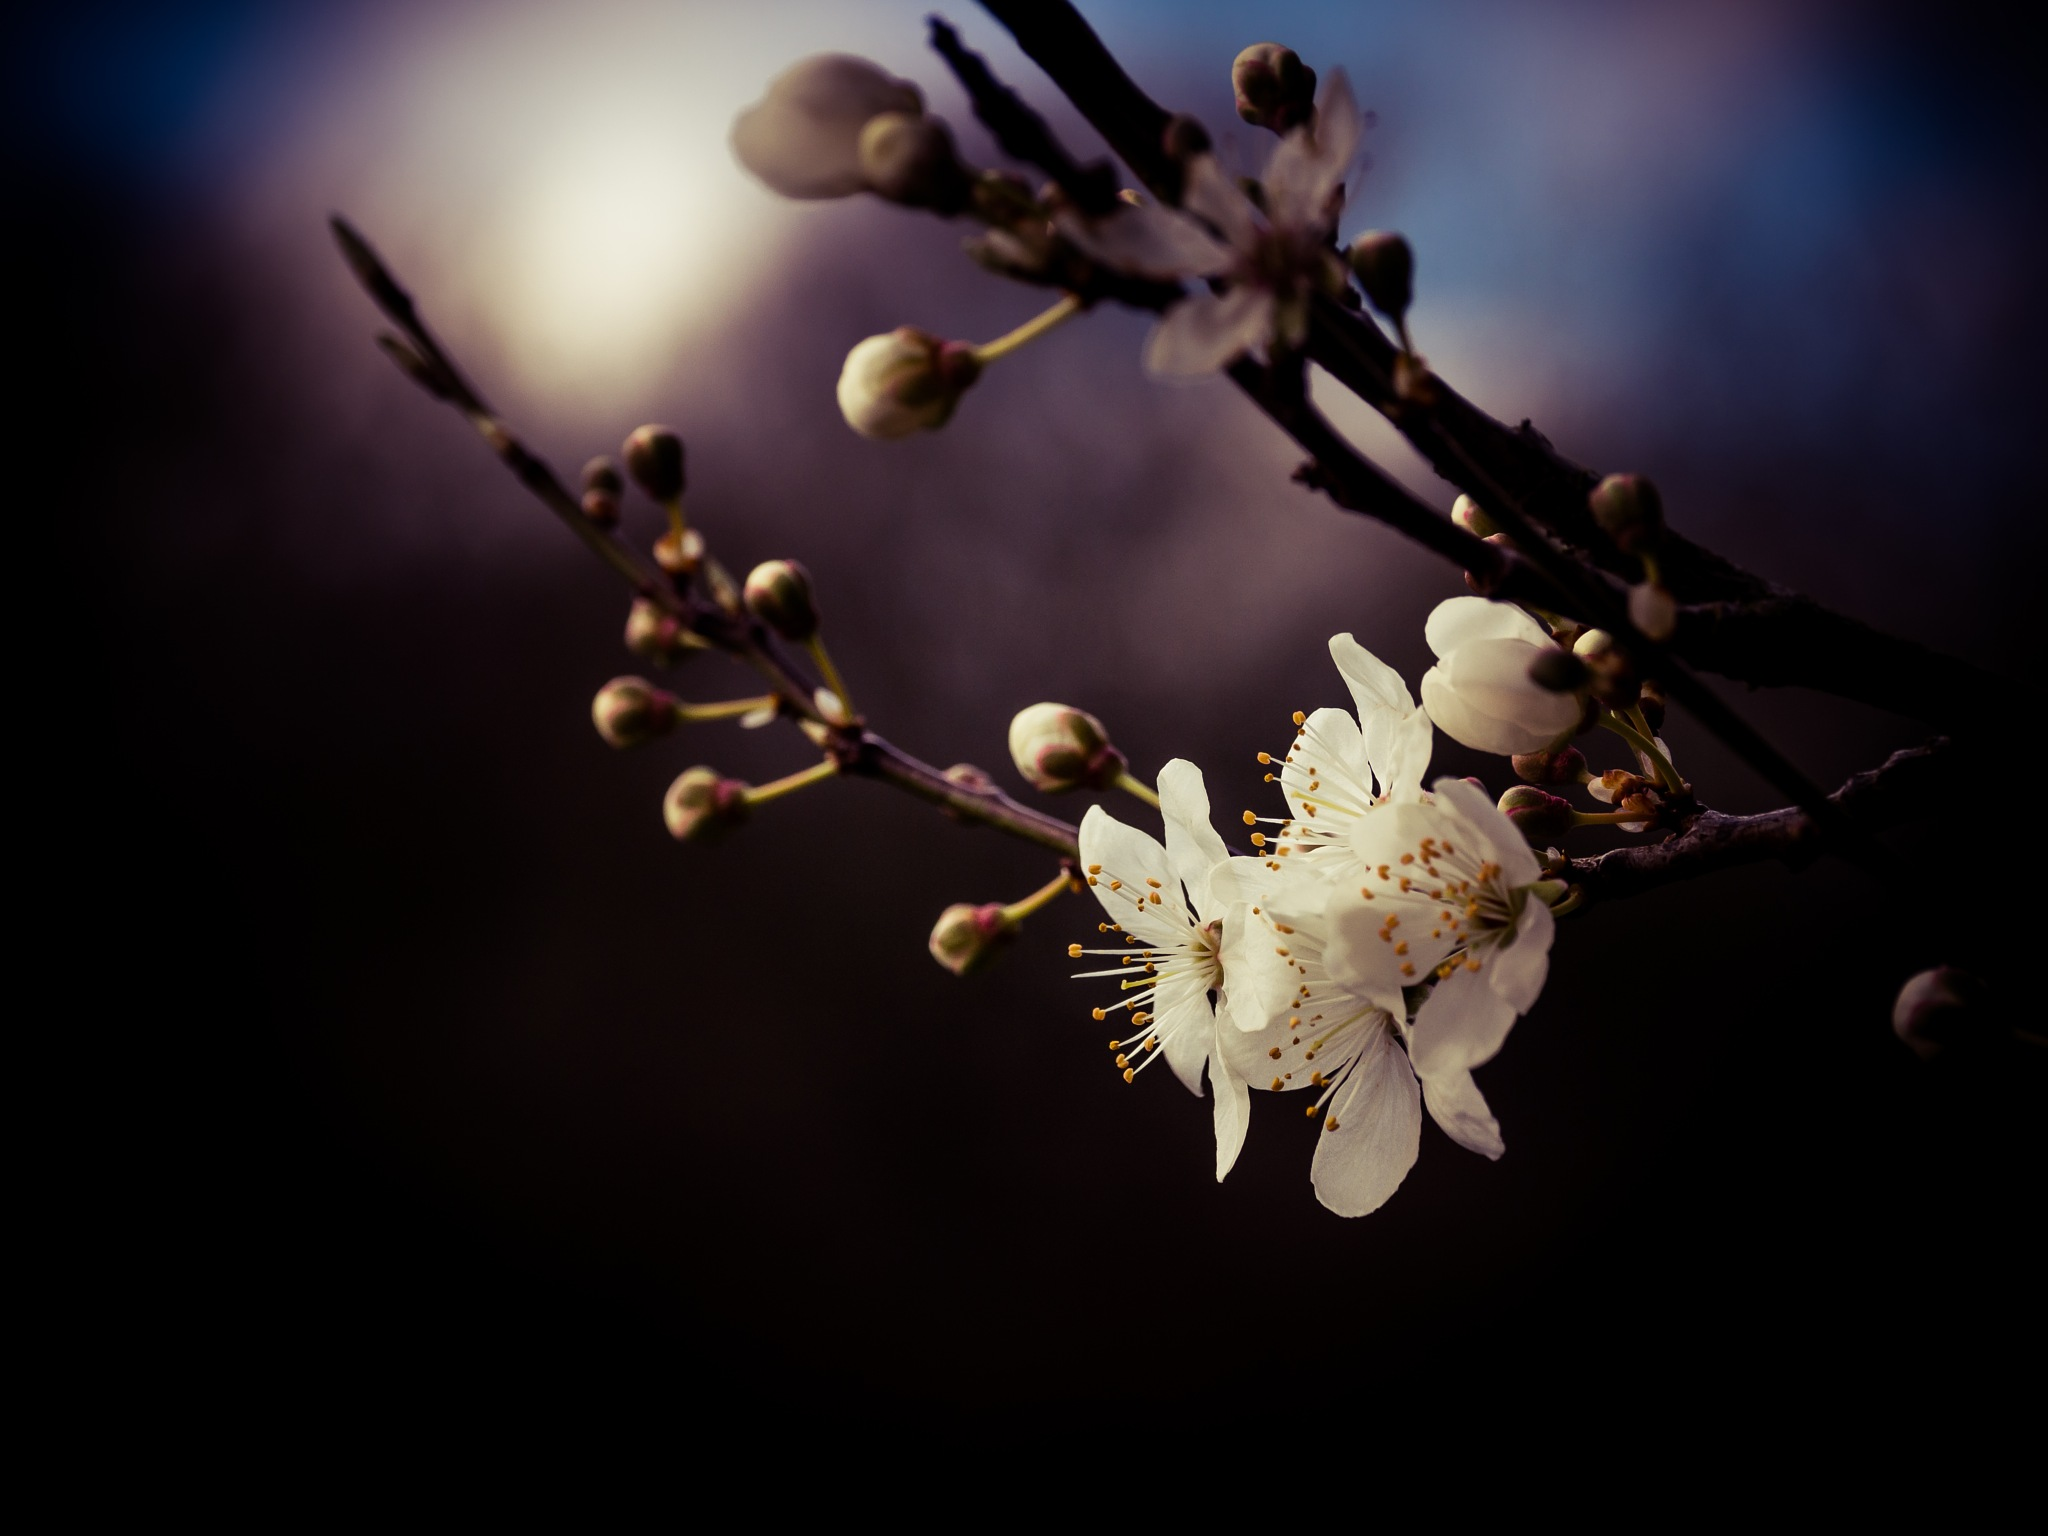 Blossom by Sarah Walters